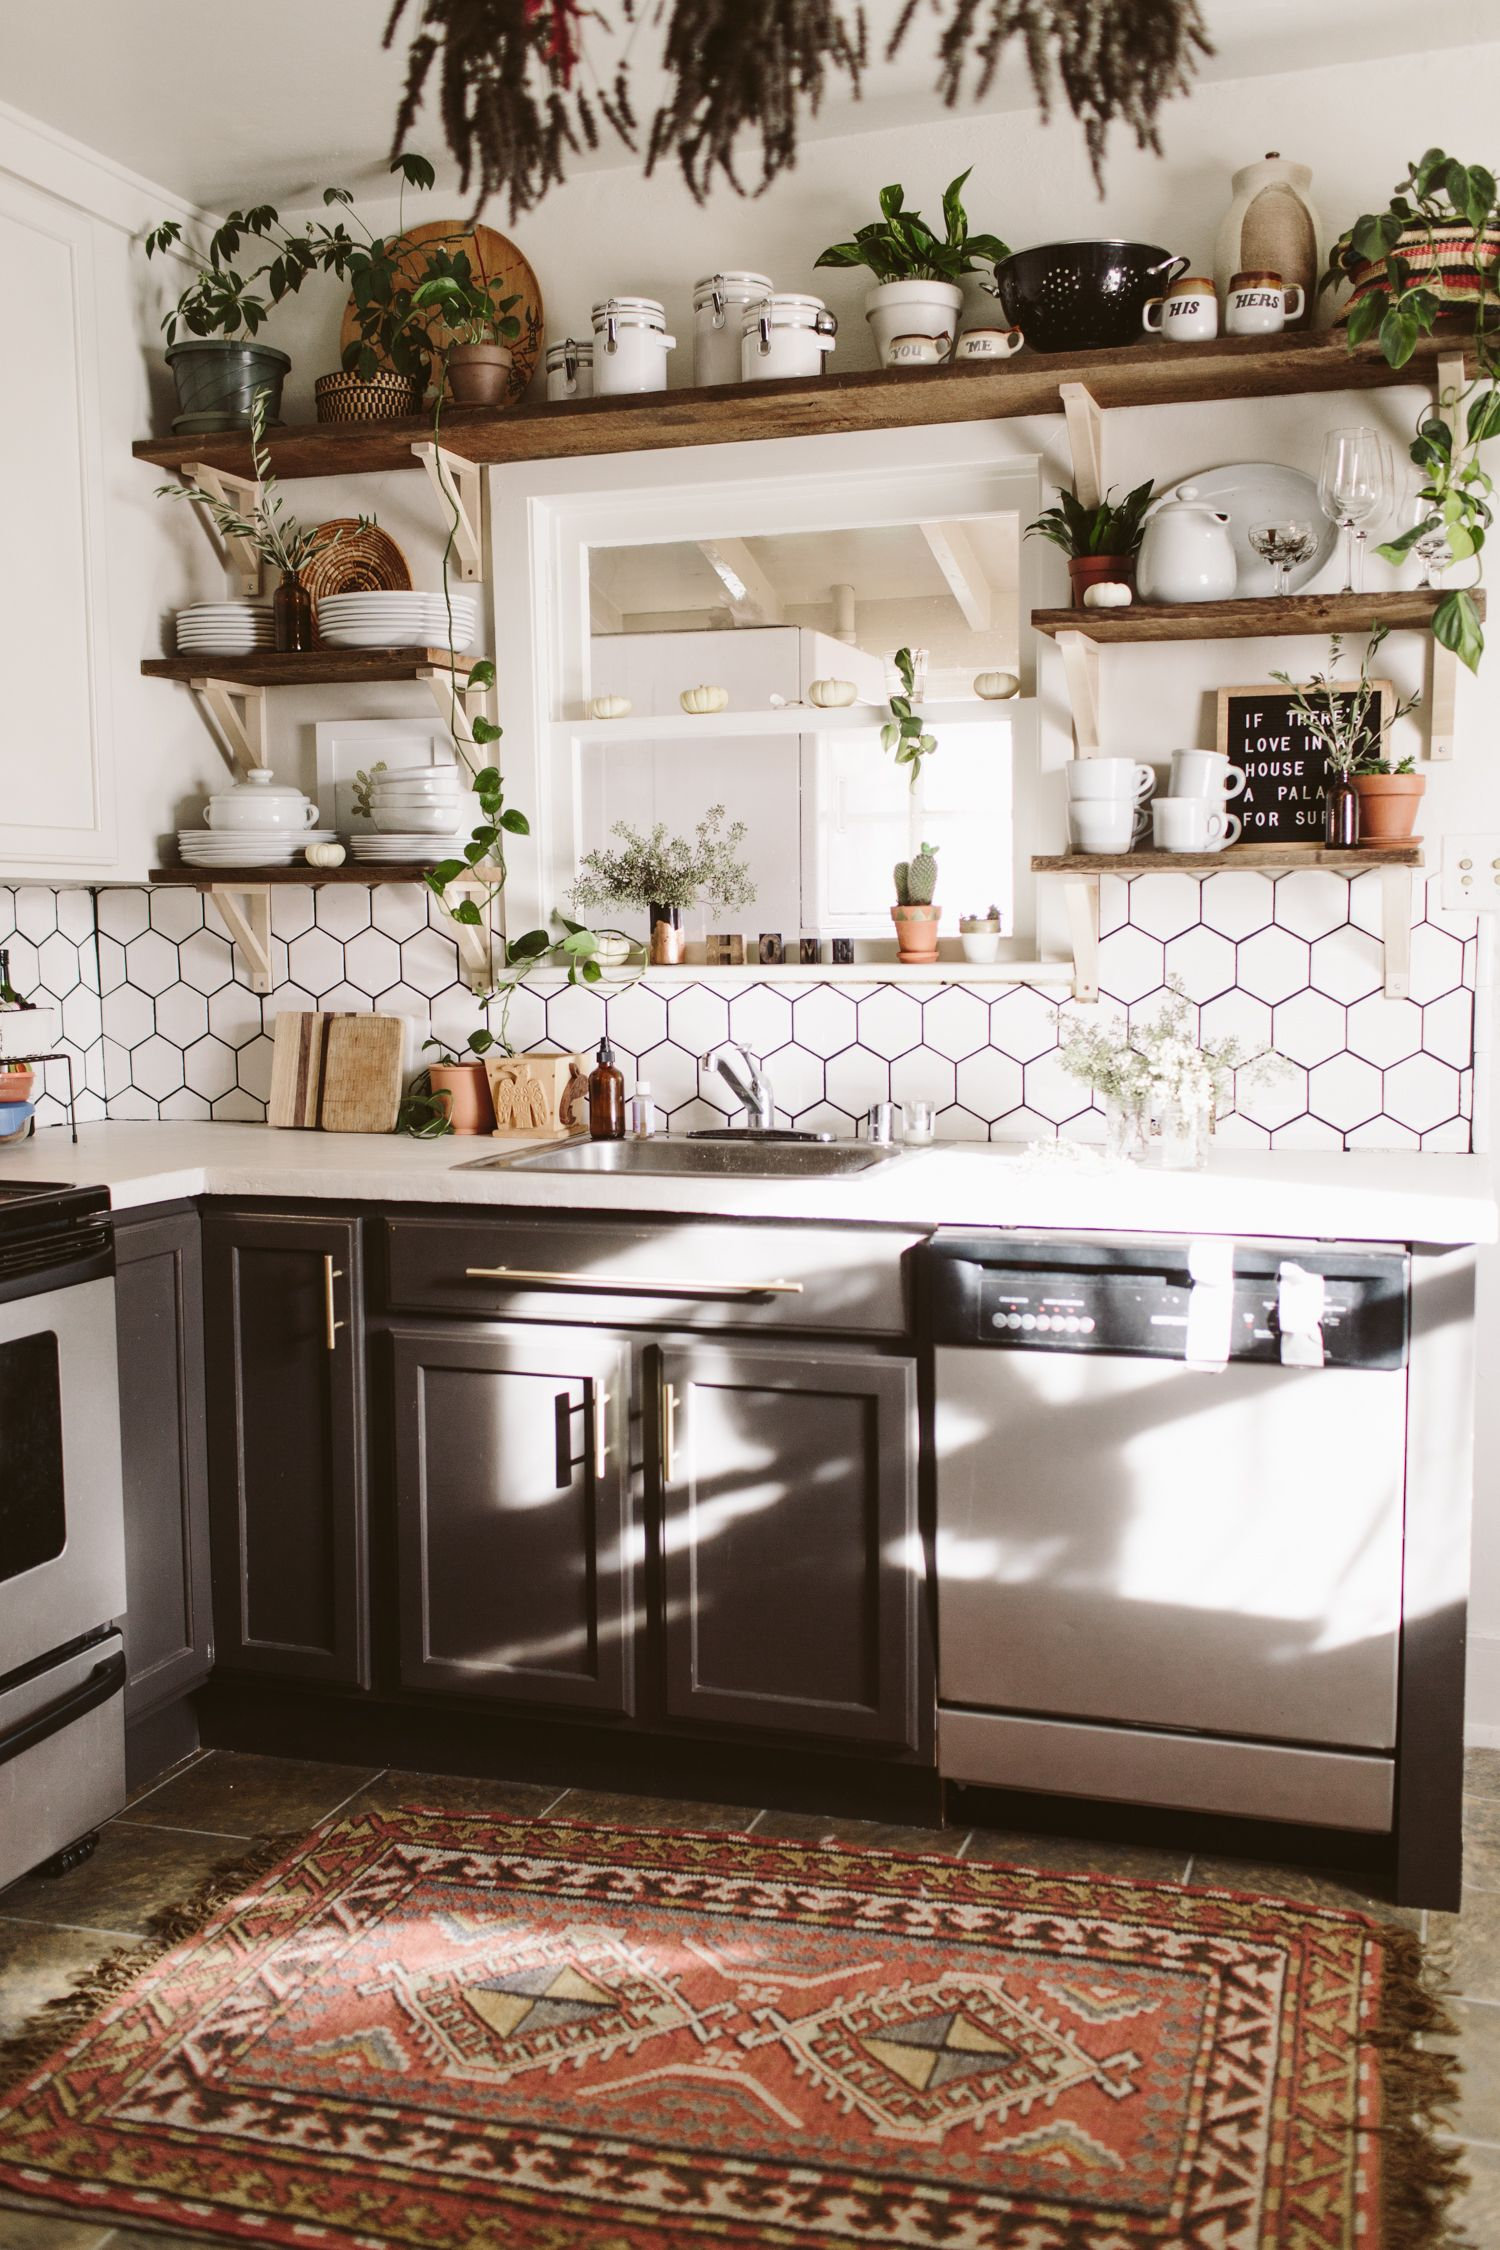 fresh light filled kitchen before after home decor kitchen kitchen remodel kitchen decor on hippie kitchen ideas boho chic id=13867